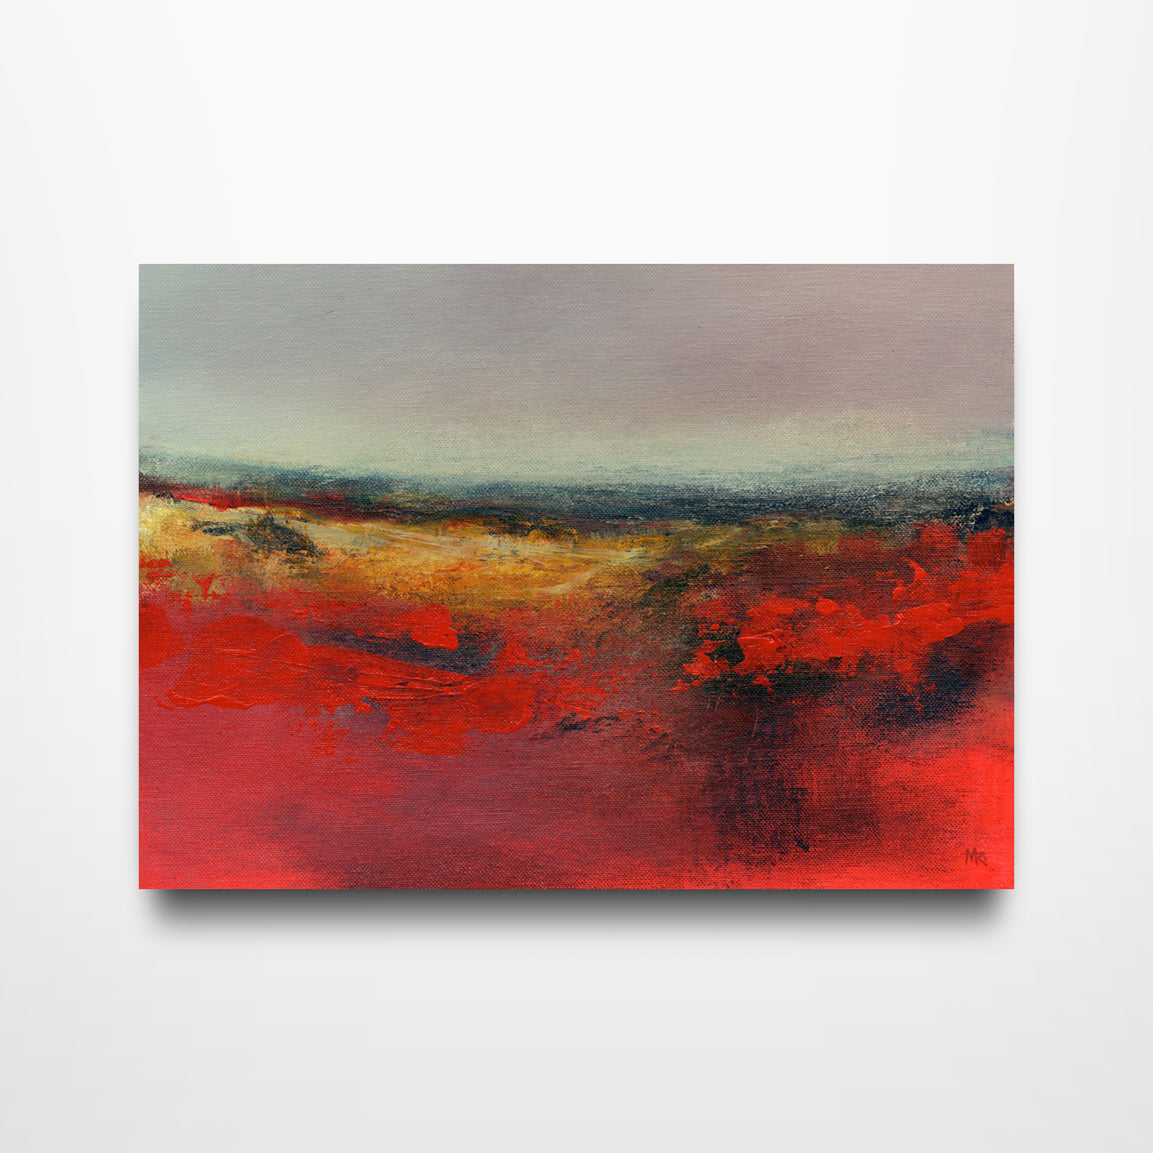 Murky Madron Carn - Canvas Print